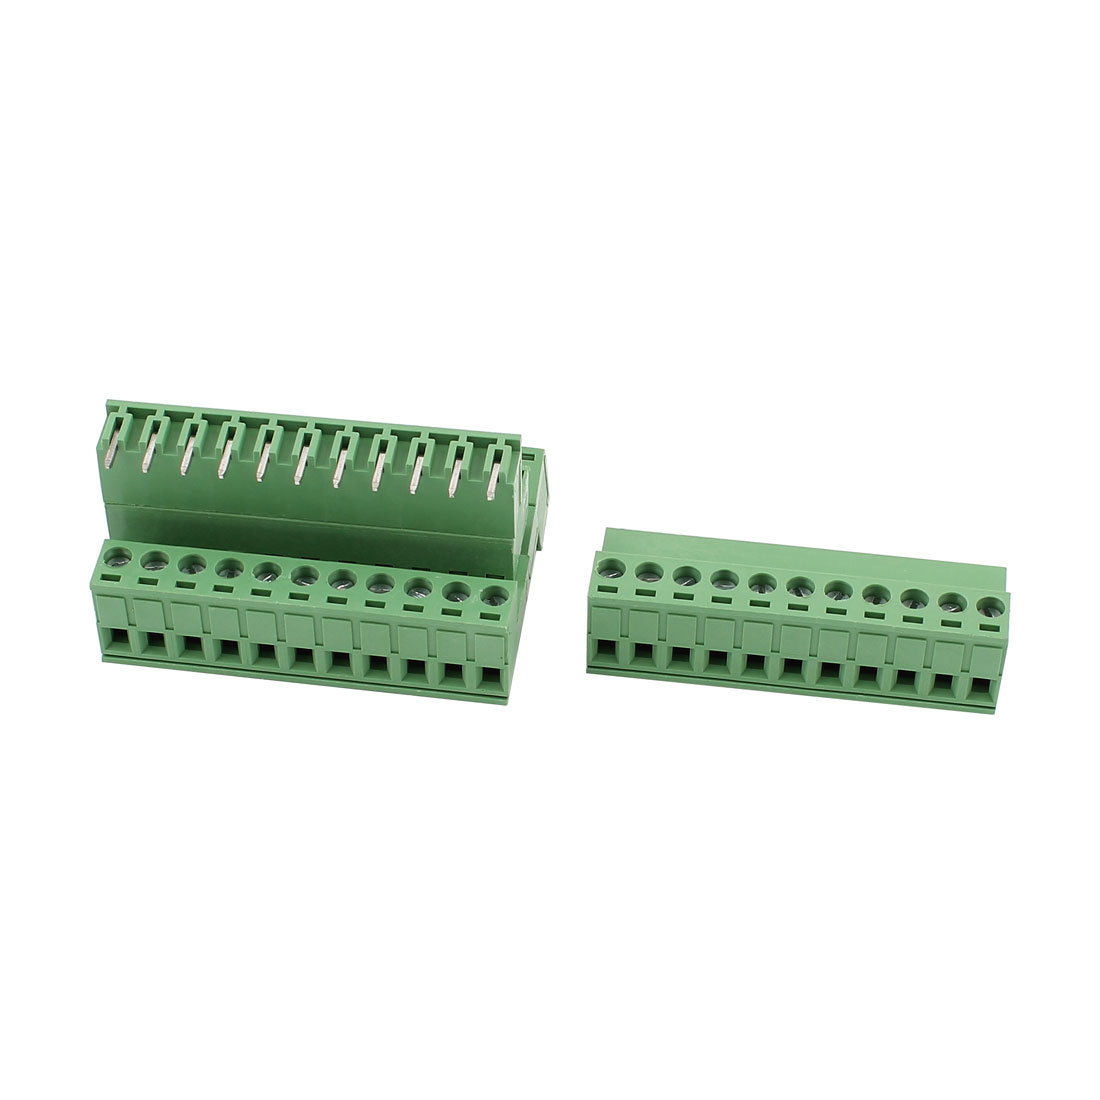 4 Pcs AC 300V 10A 11 Pins PCB Screw Terminal Block Connector 5.08mm Pitch Green